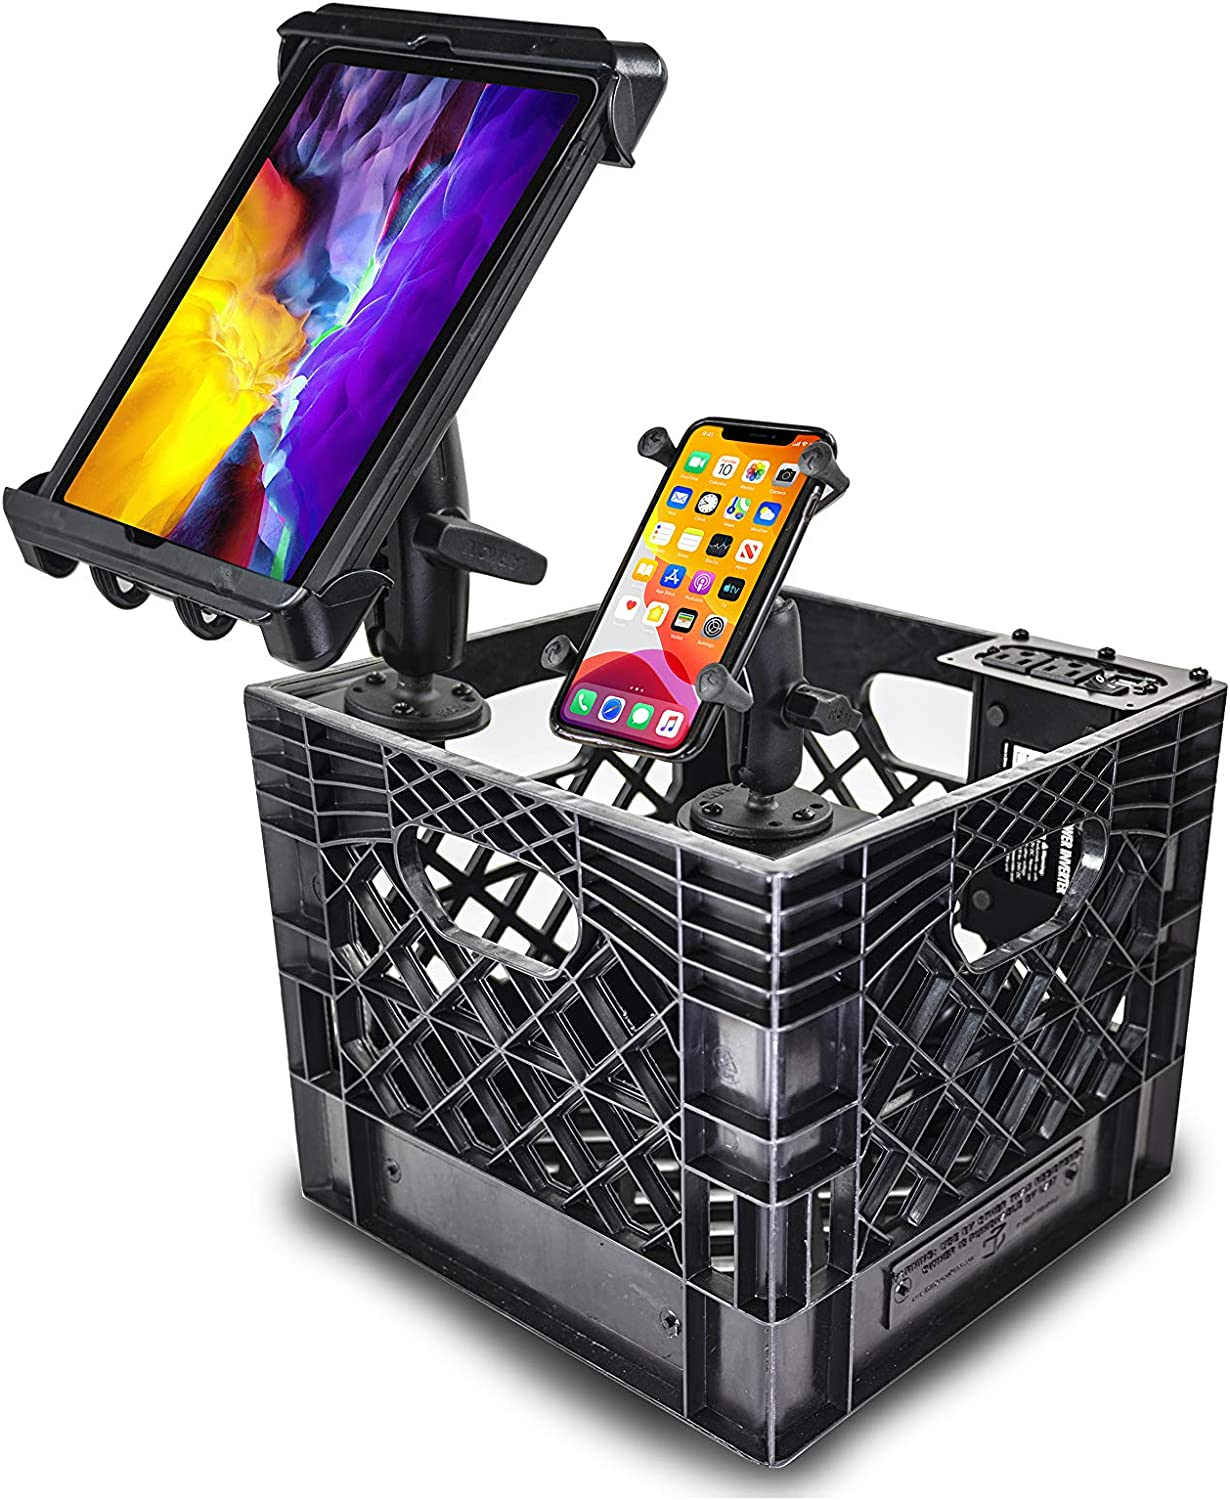 AutoExec AUE80017 Milkcrate with Phone Mount, Tablet Mount and Power Inverter for Organizing Your Vehicle